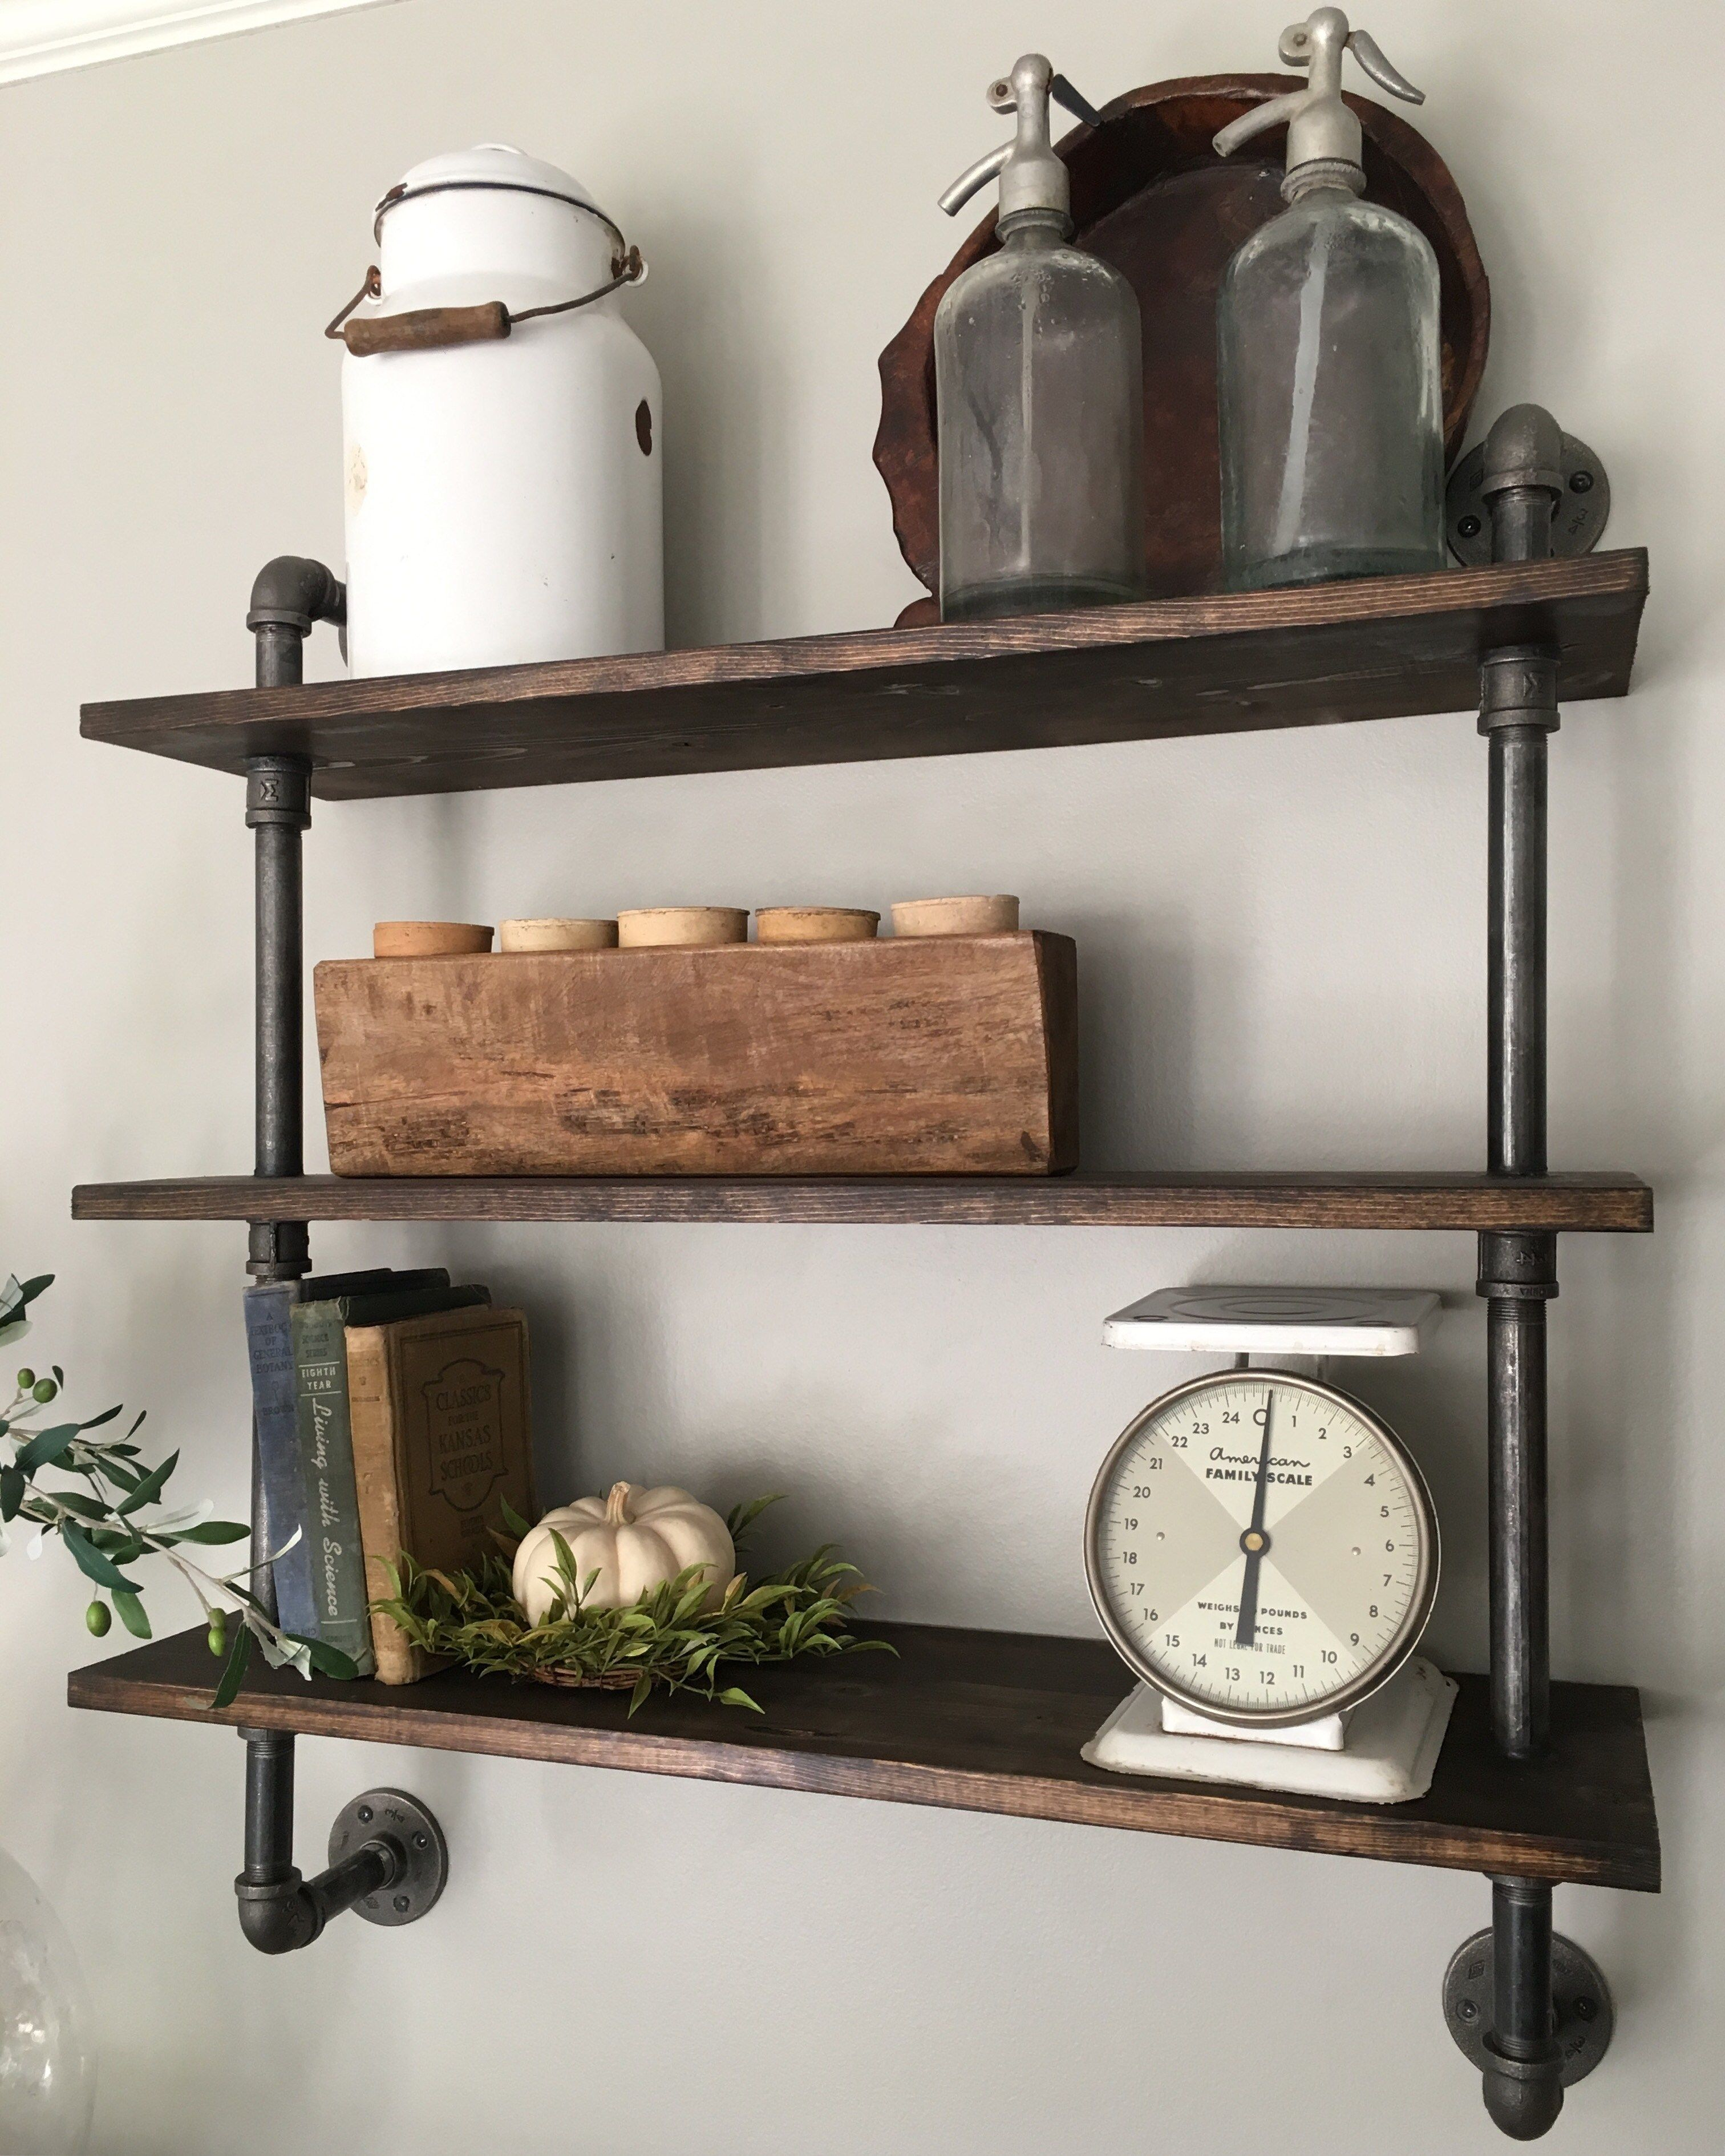 5 Tips to Styling Your Shelves 5